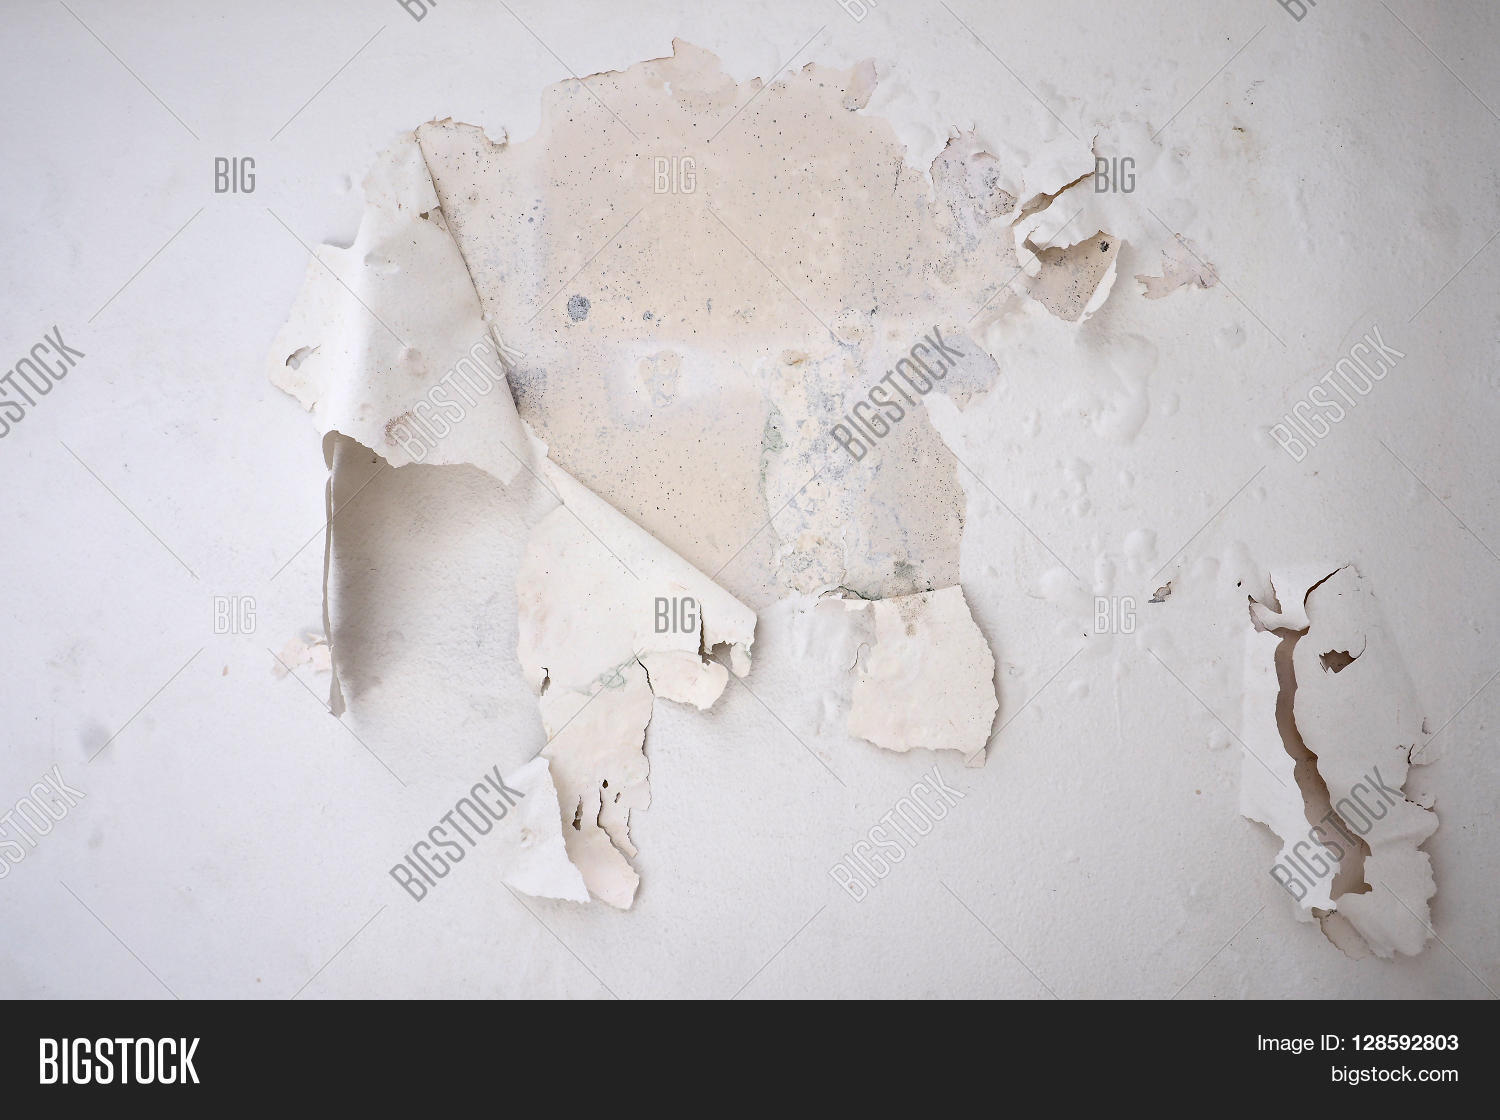 I Had To Peeling Paint My House Wall By My Self Because Moisture From The Side Walls The Color